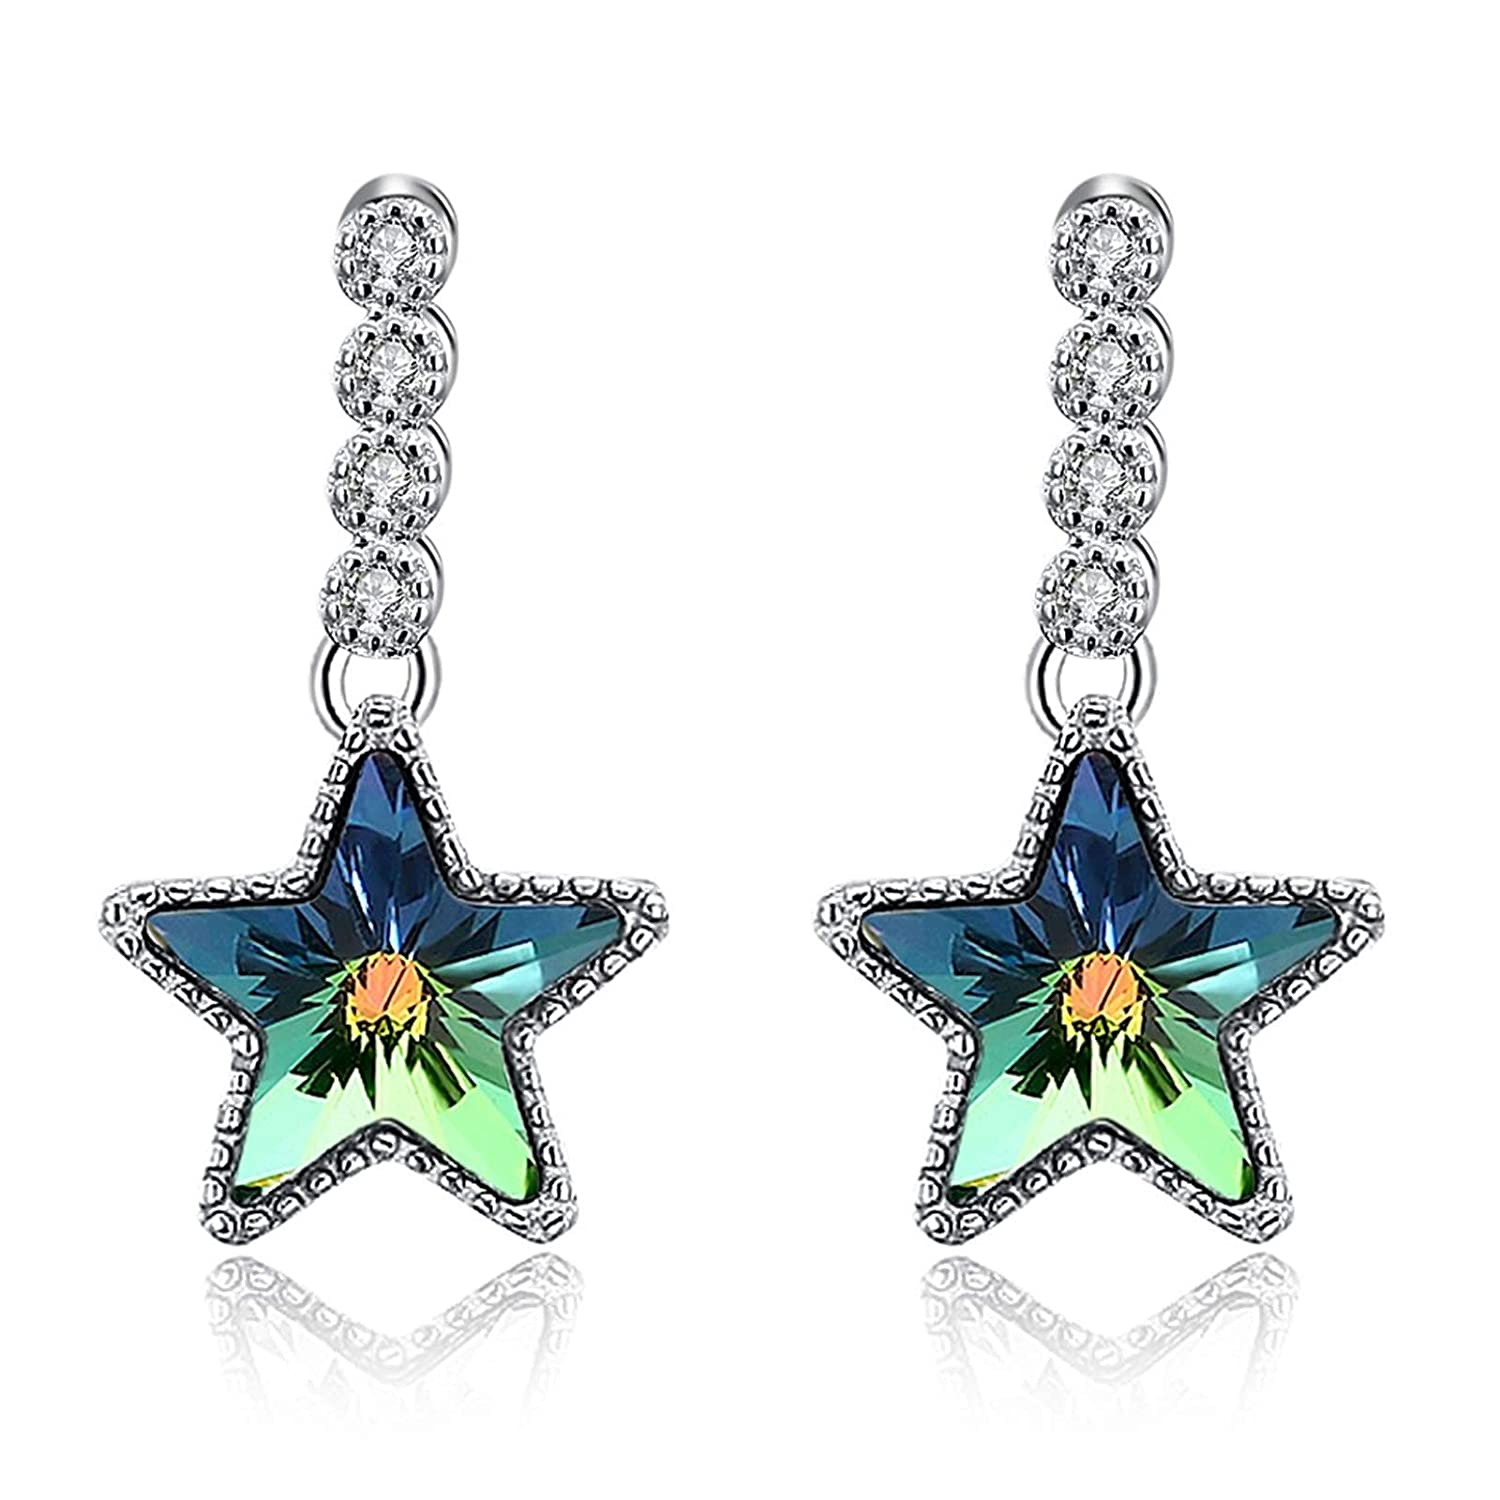 Adisaer Silver Plated Stud Earrings Gemstone Blue Green 4 Round Mini-Crystals Star Earrings For Her,Bridal Gift